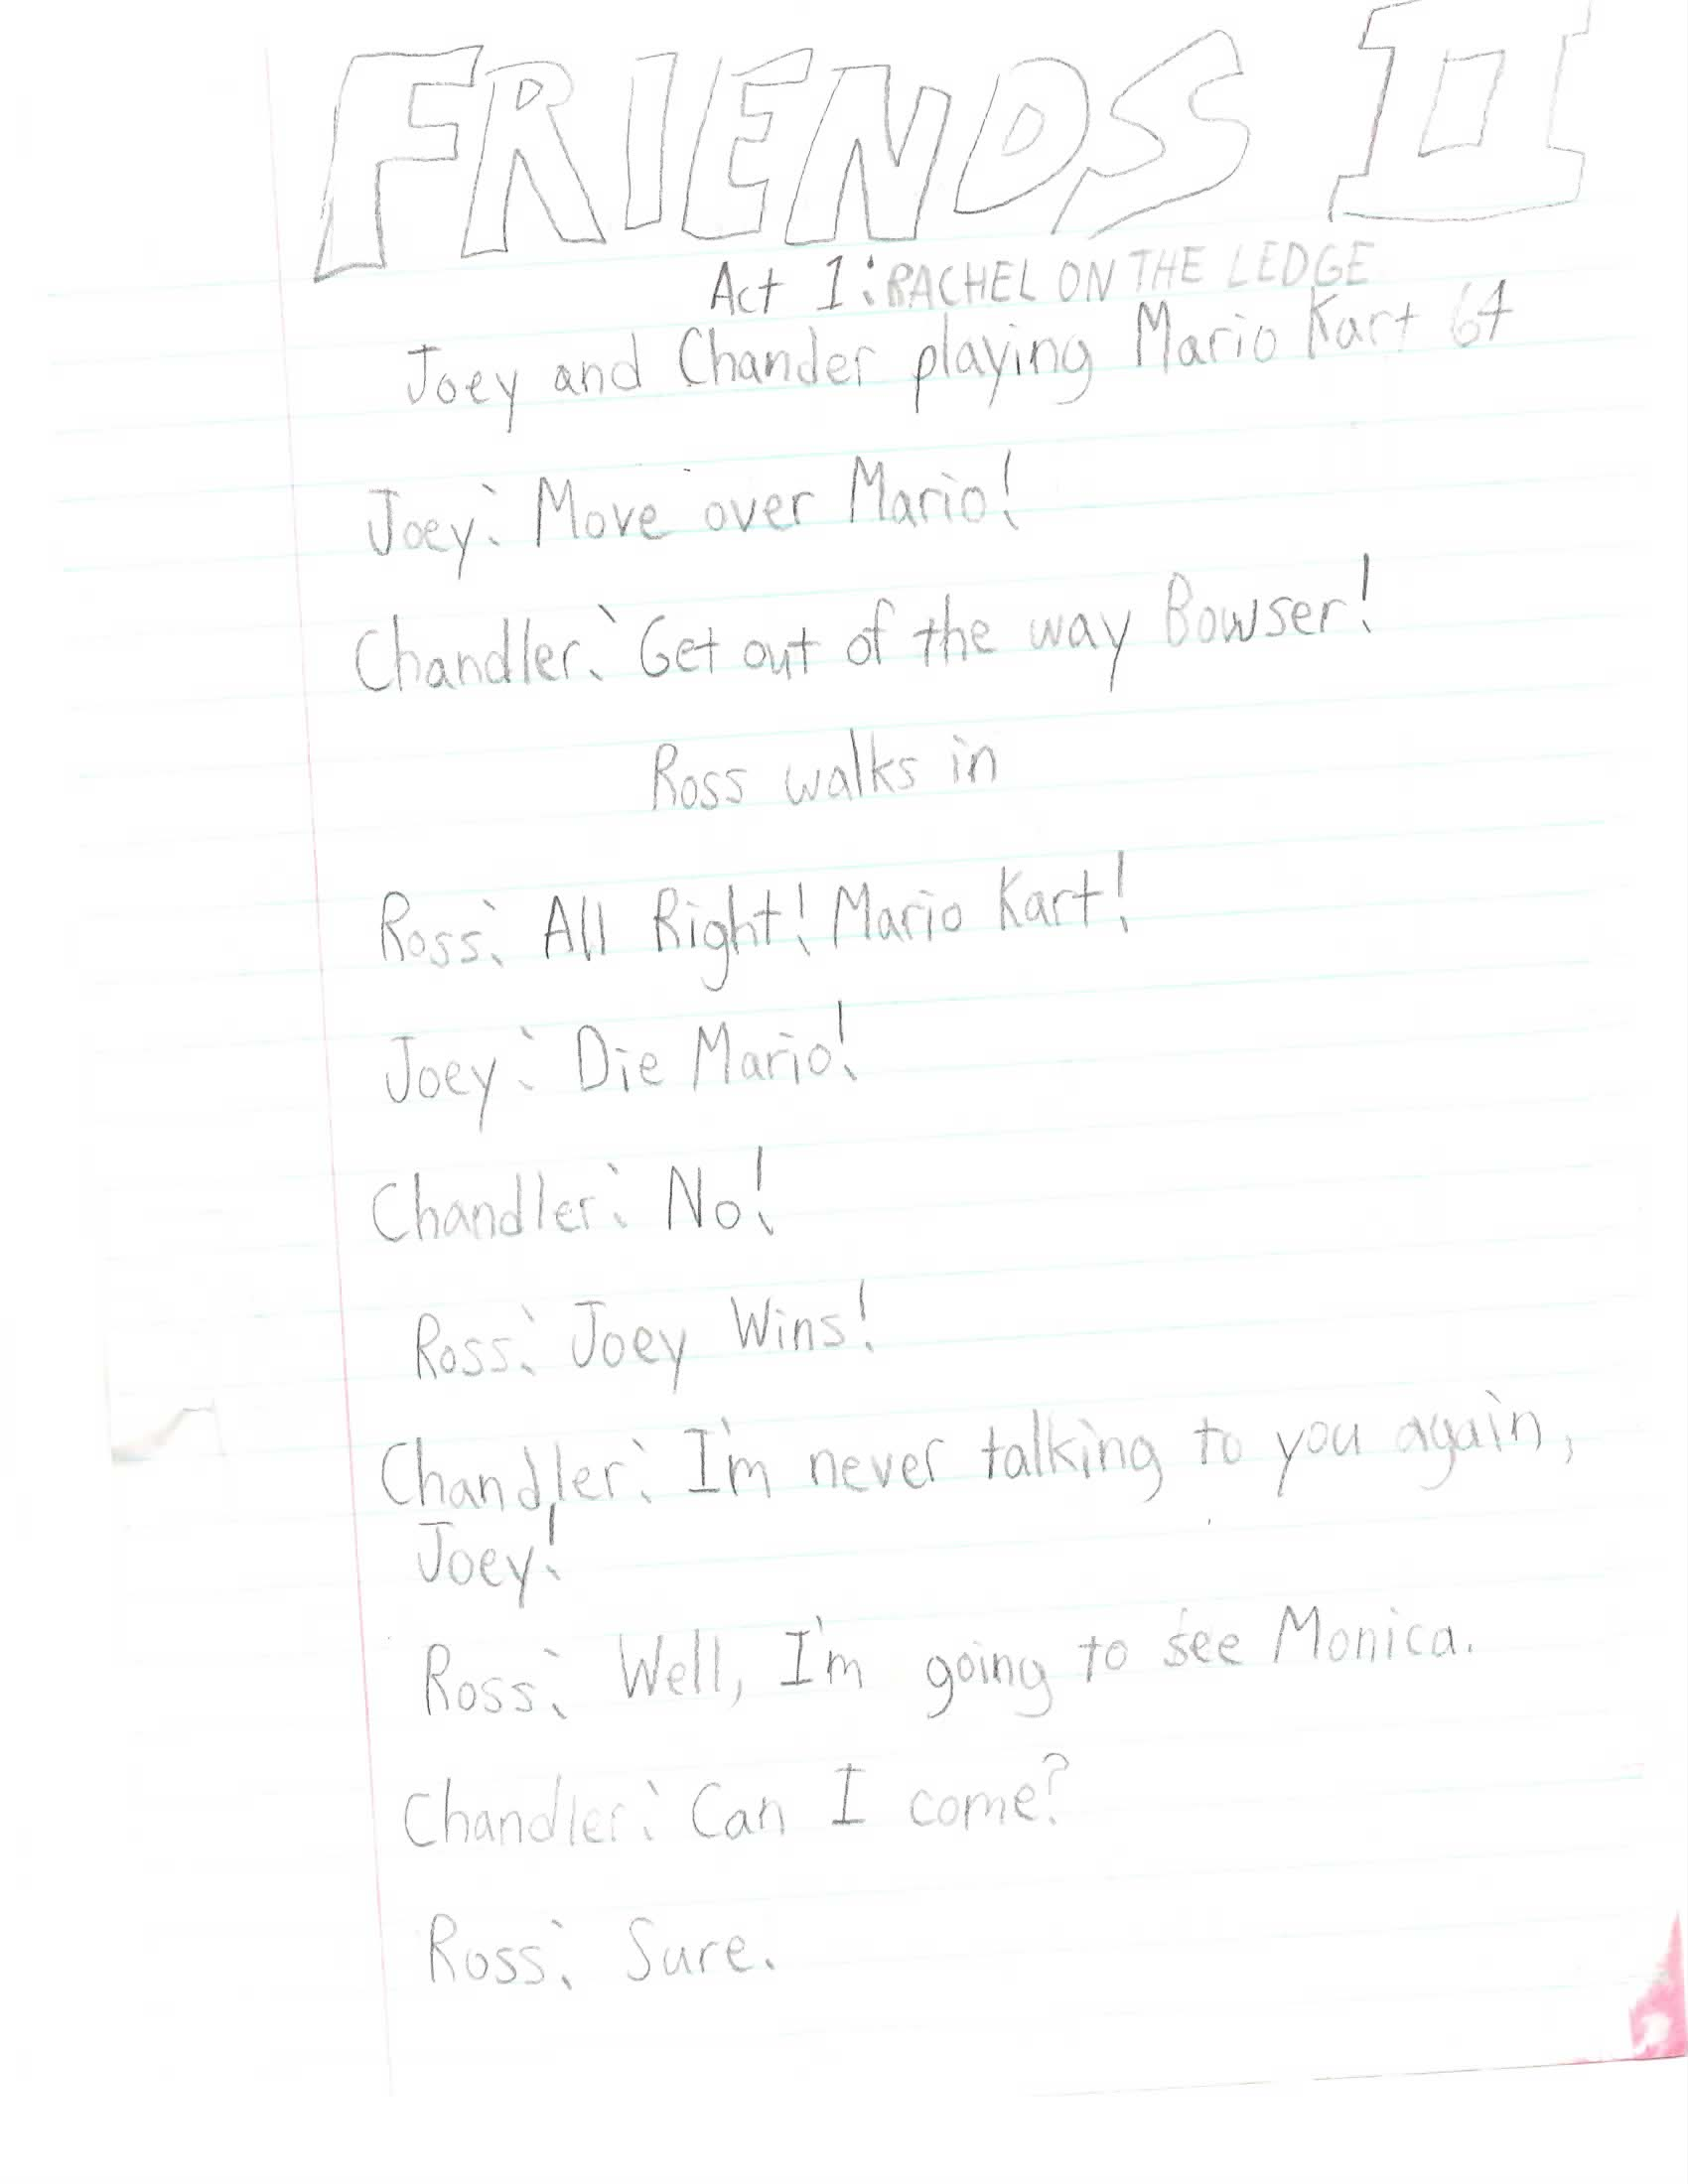 An 8-year-old kid wrote a spec script for 'Friends,' and it features a monkey purse-snatcher and a giant rolling donut.